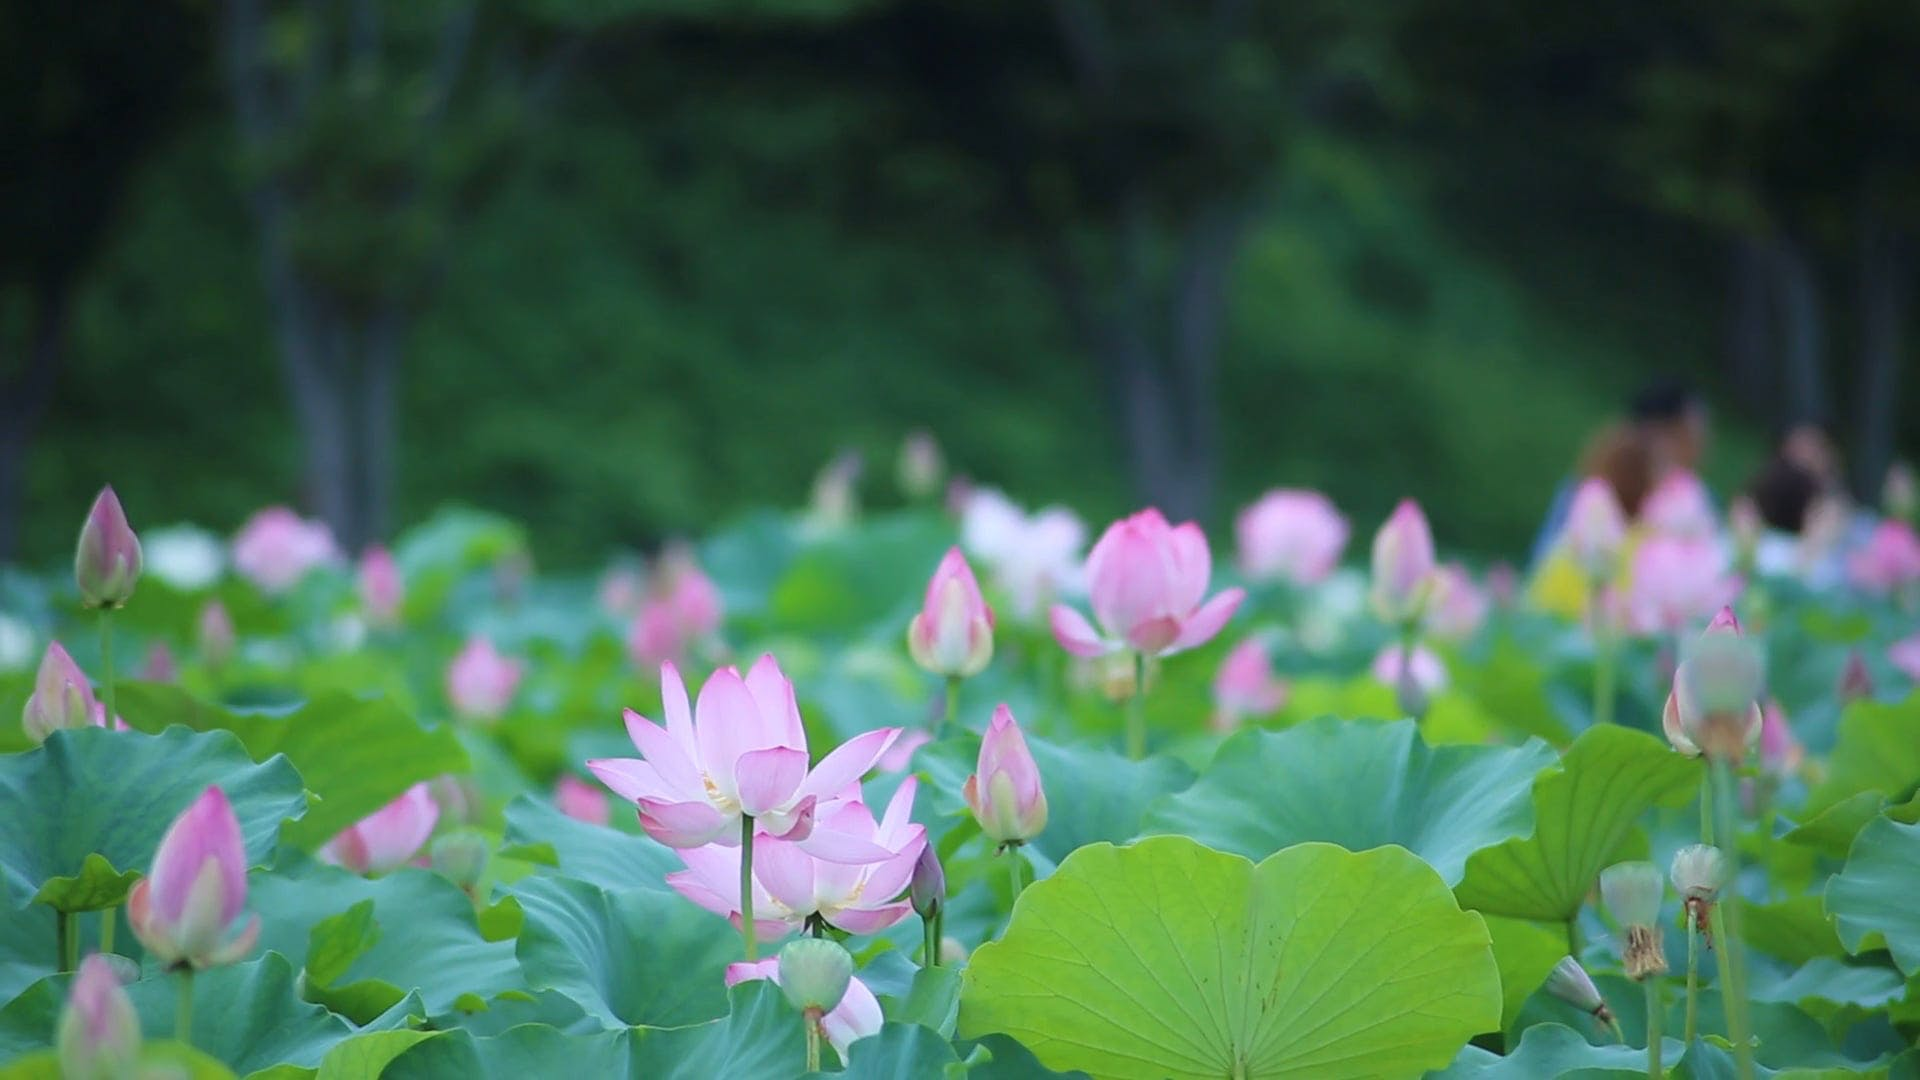 Beautiful Lotus Field in Bloom